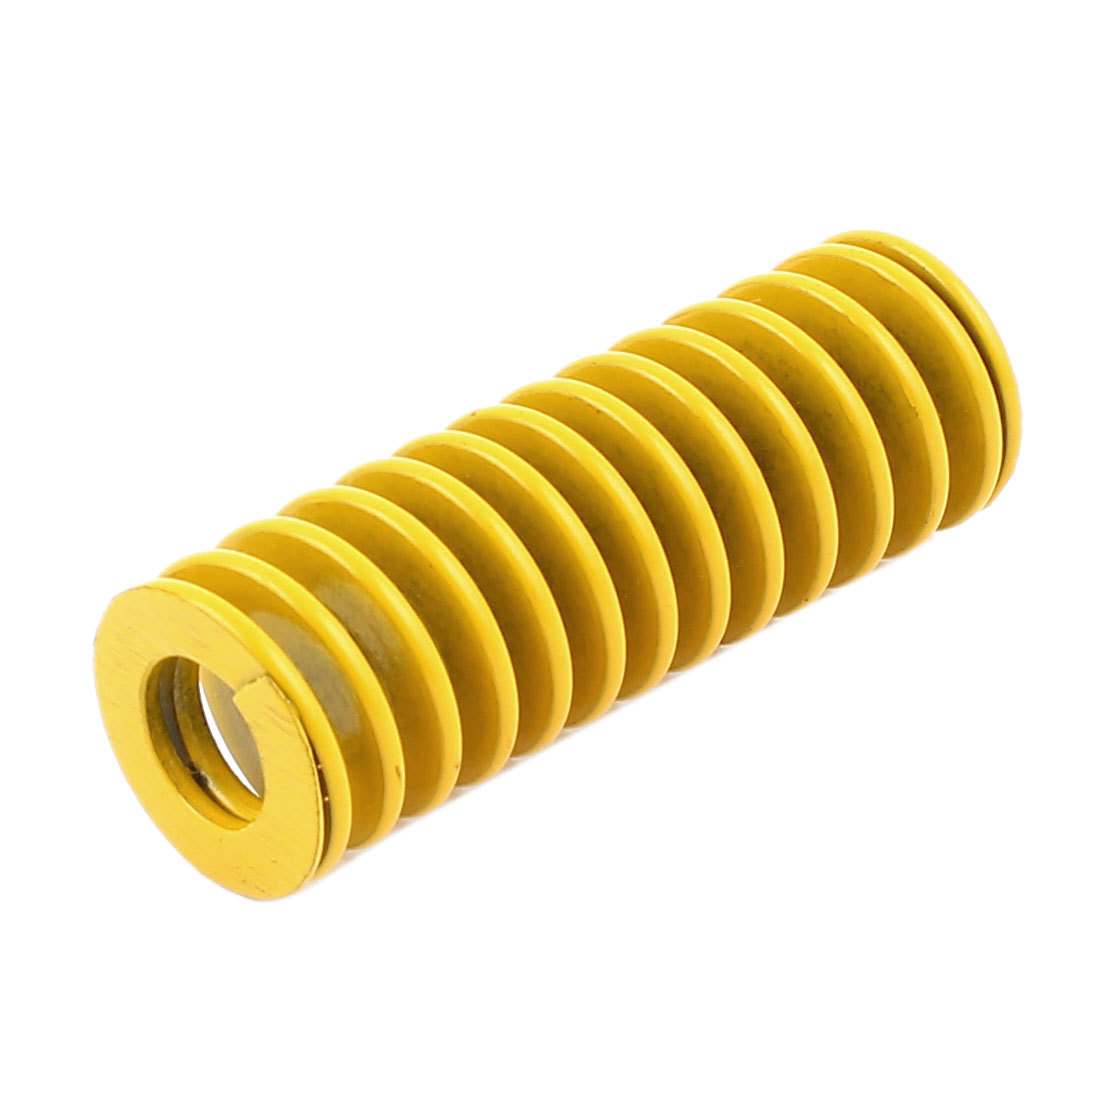 Yellow Alloy Steel Light Load Press Flat Coil Compression Die Spring 16mm x 8mm x 45mm